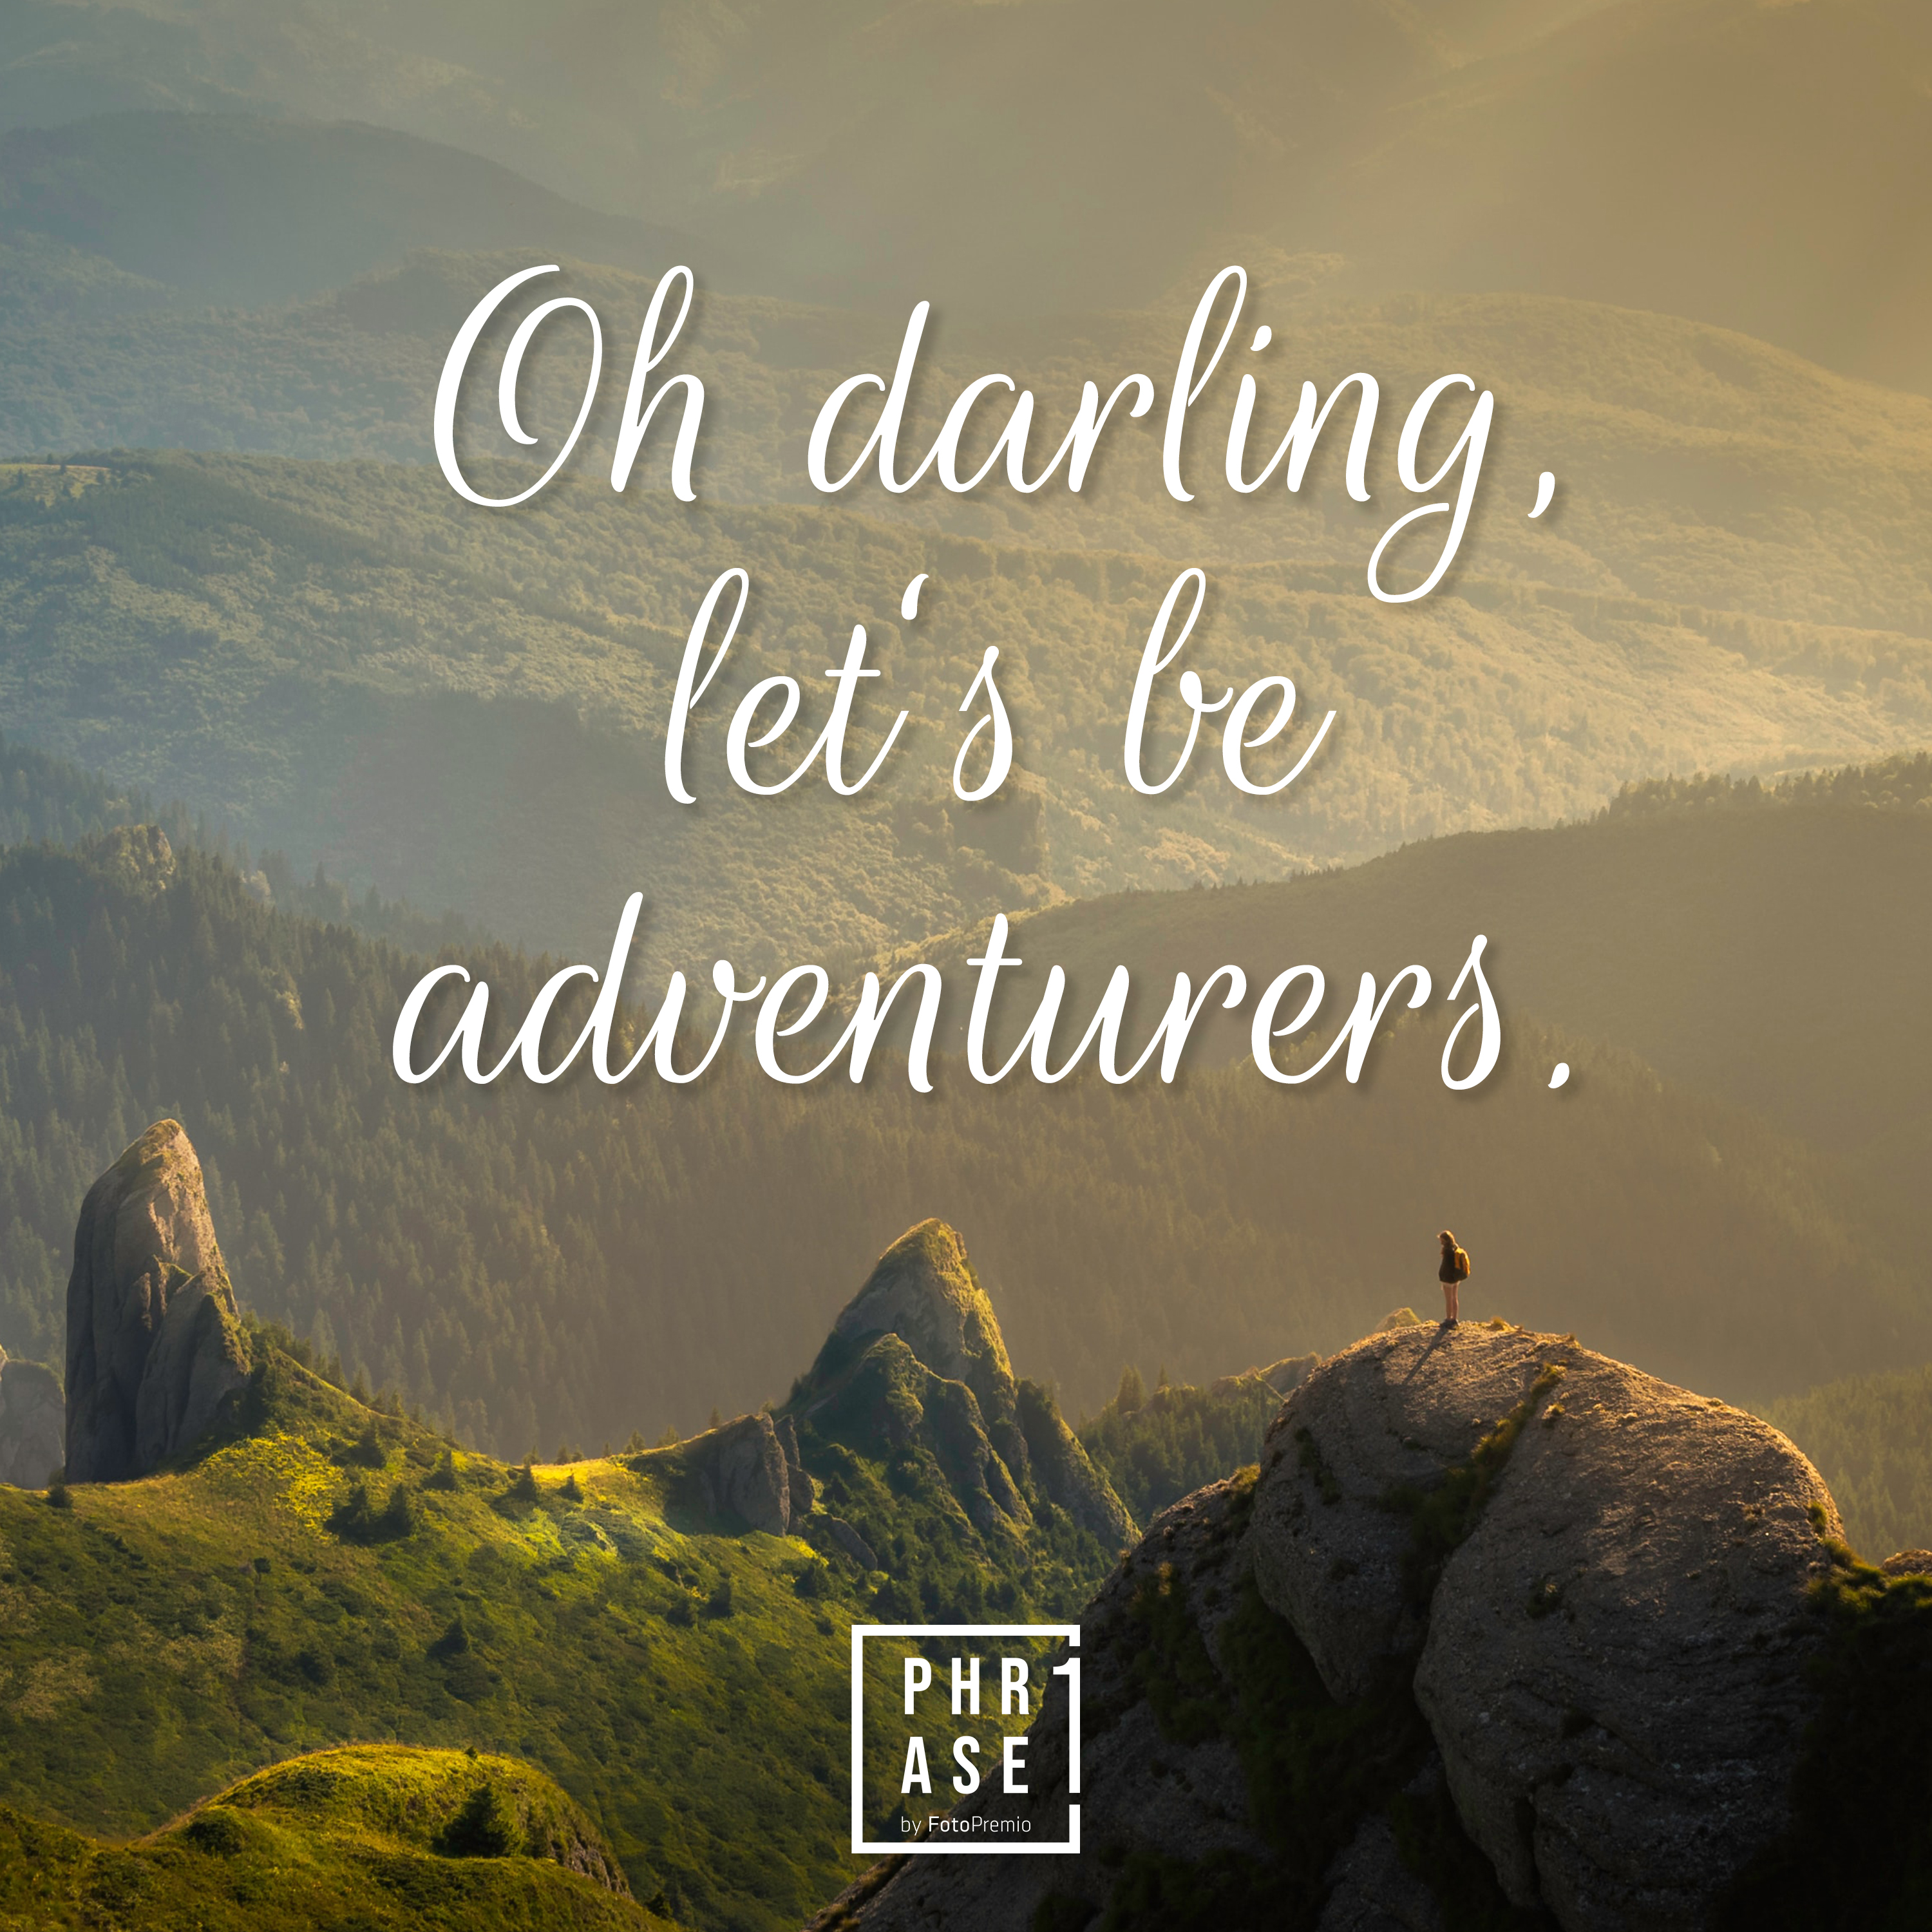 Oh darling, lets be adventurers.